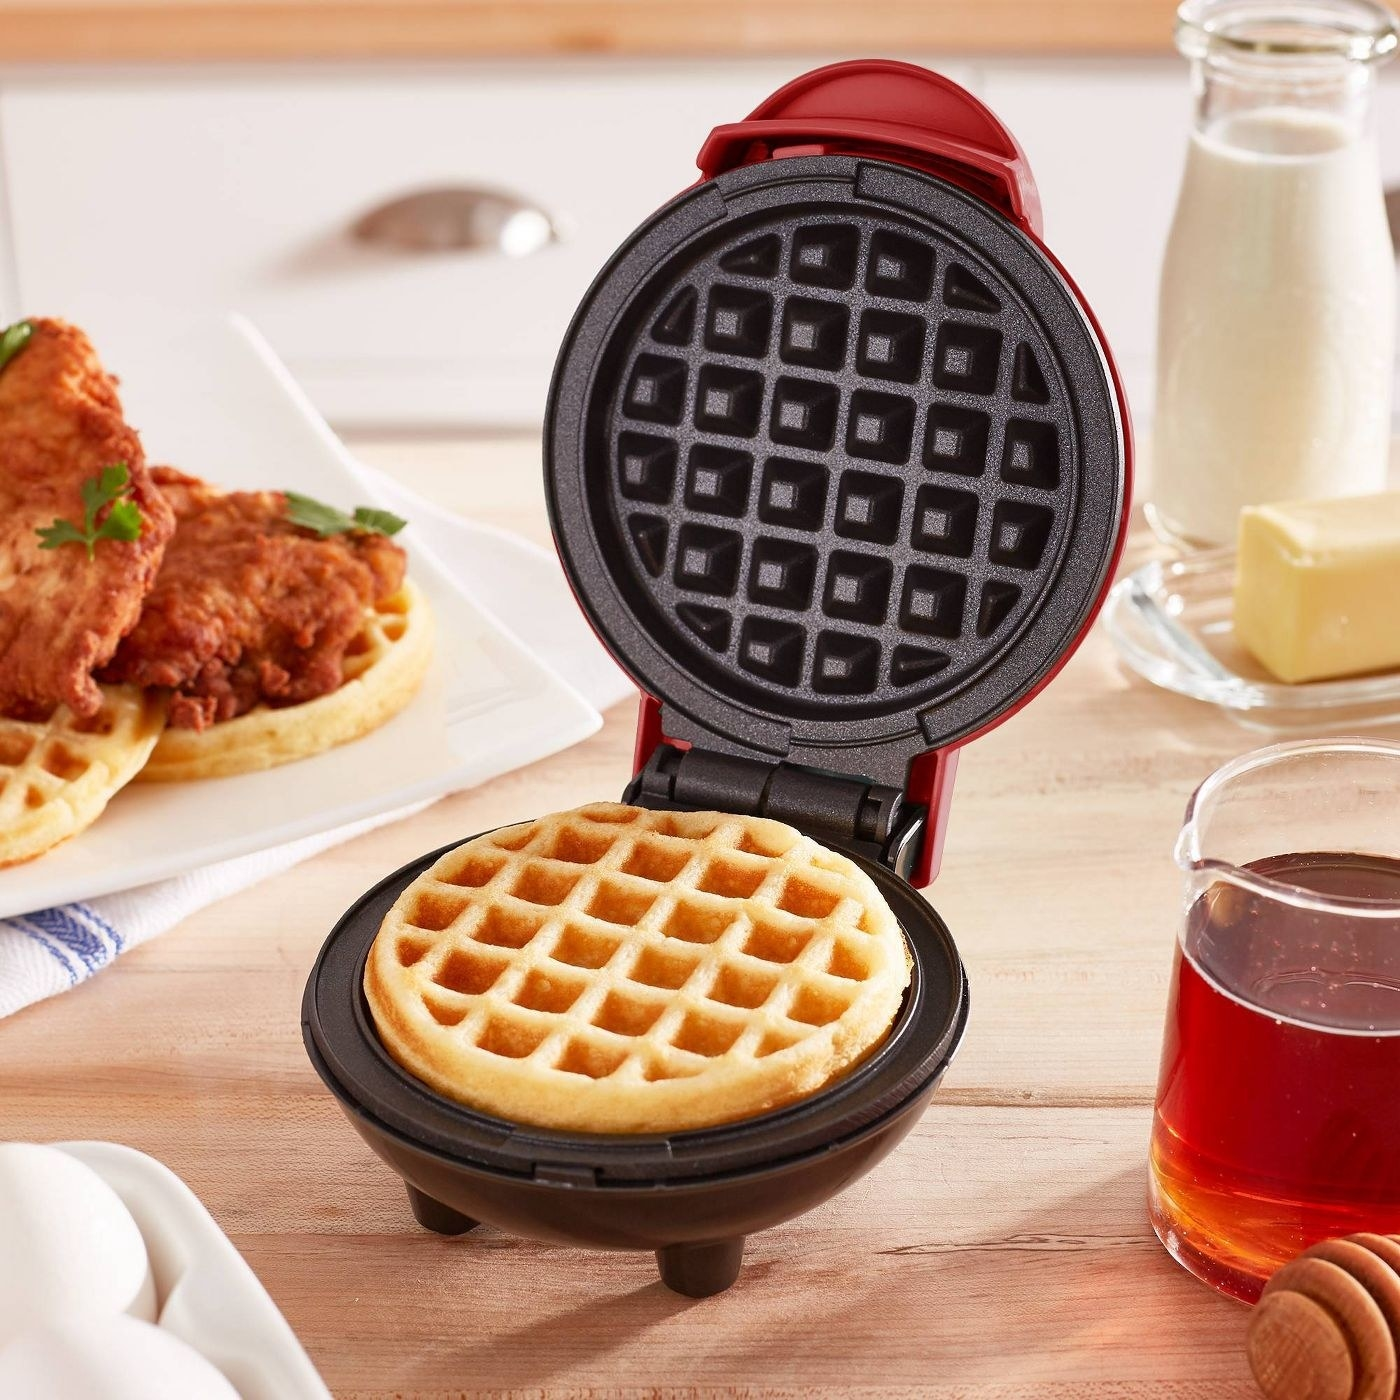 red mini waffle maker with a cooked waffle in it